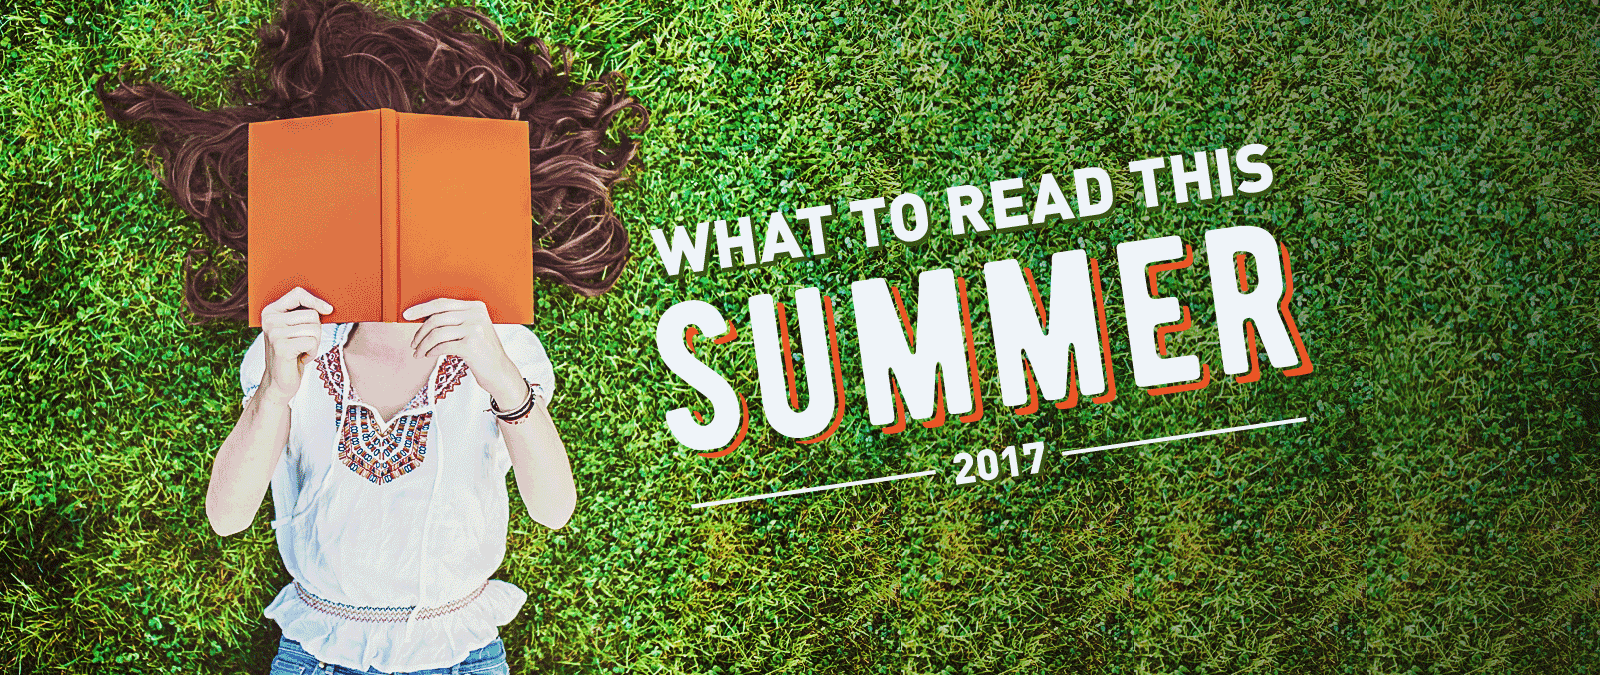 What To Read This Summer, 2017